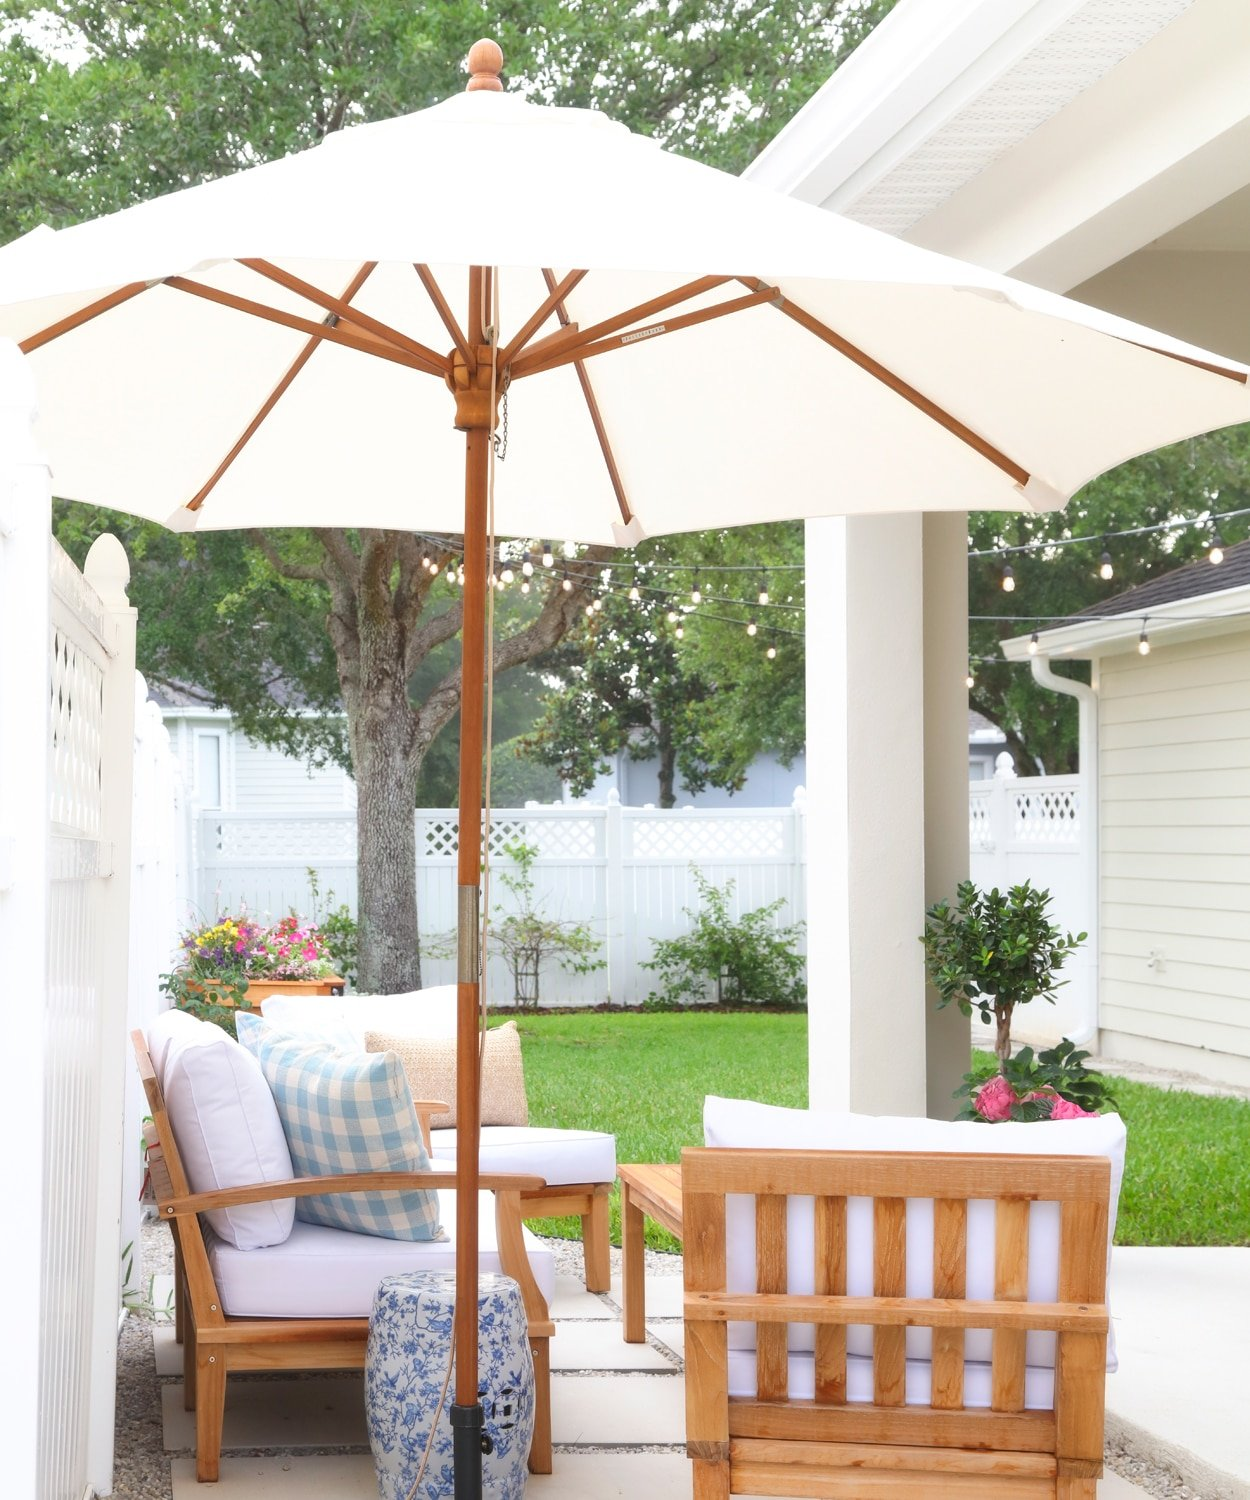 A new patio nook in Ashley Brooke's DIY backyard redesign! | www.ashleybrookedesigns.com